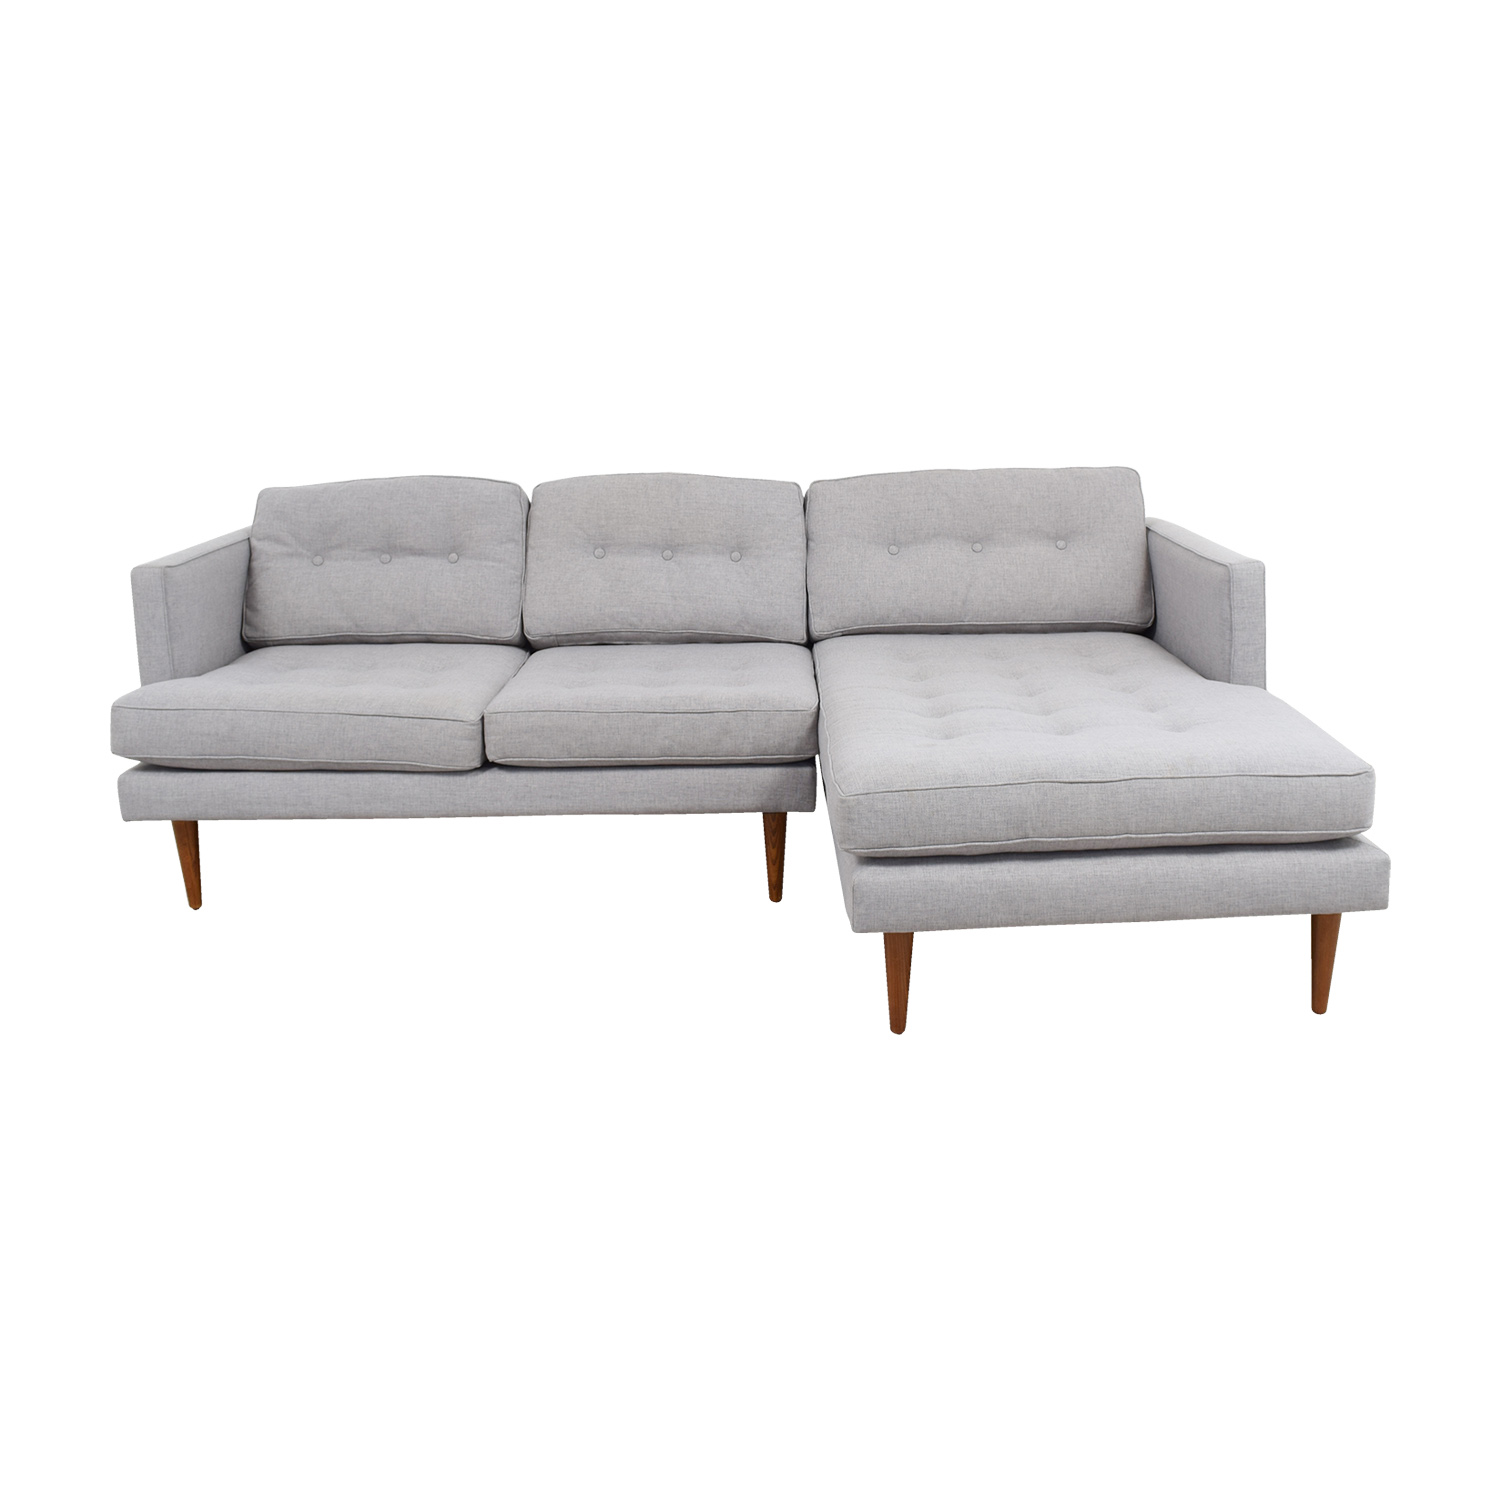 72 inch sofa with chaise fold out bed queen off west elm grey tufted sectional